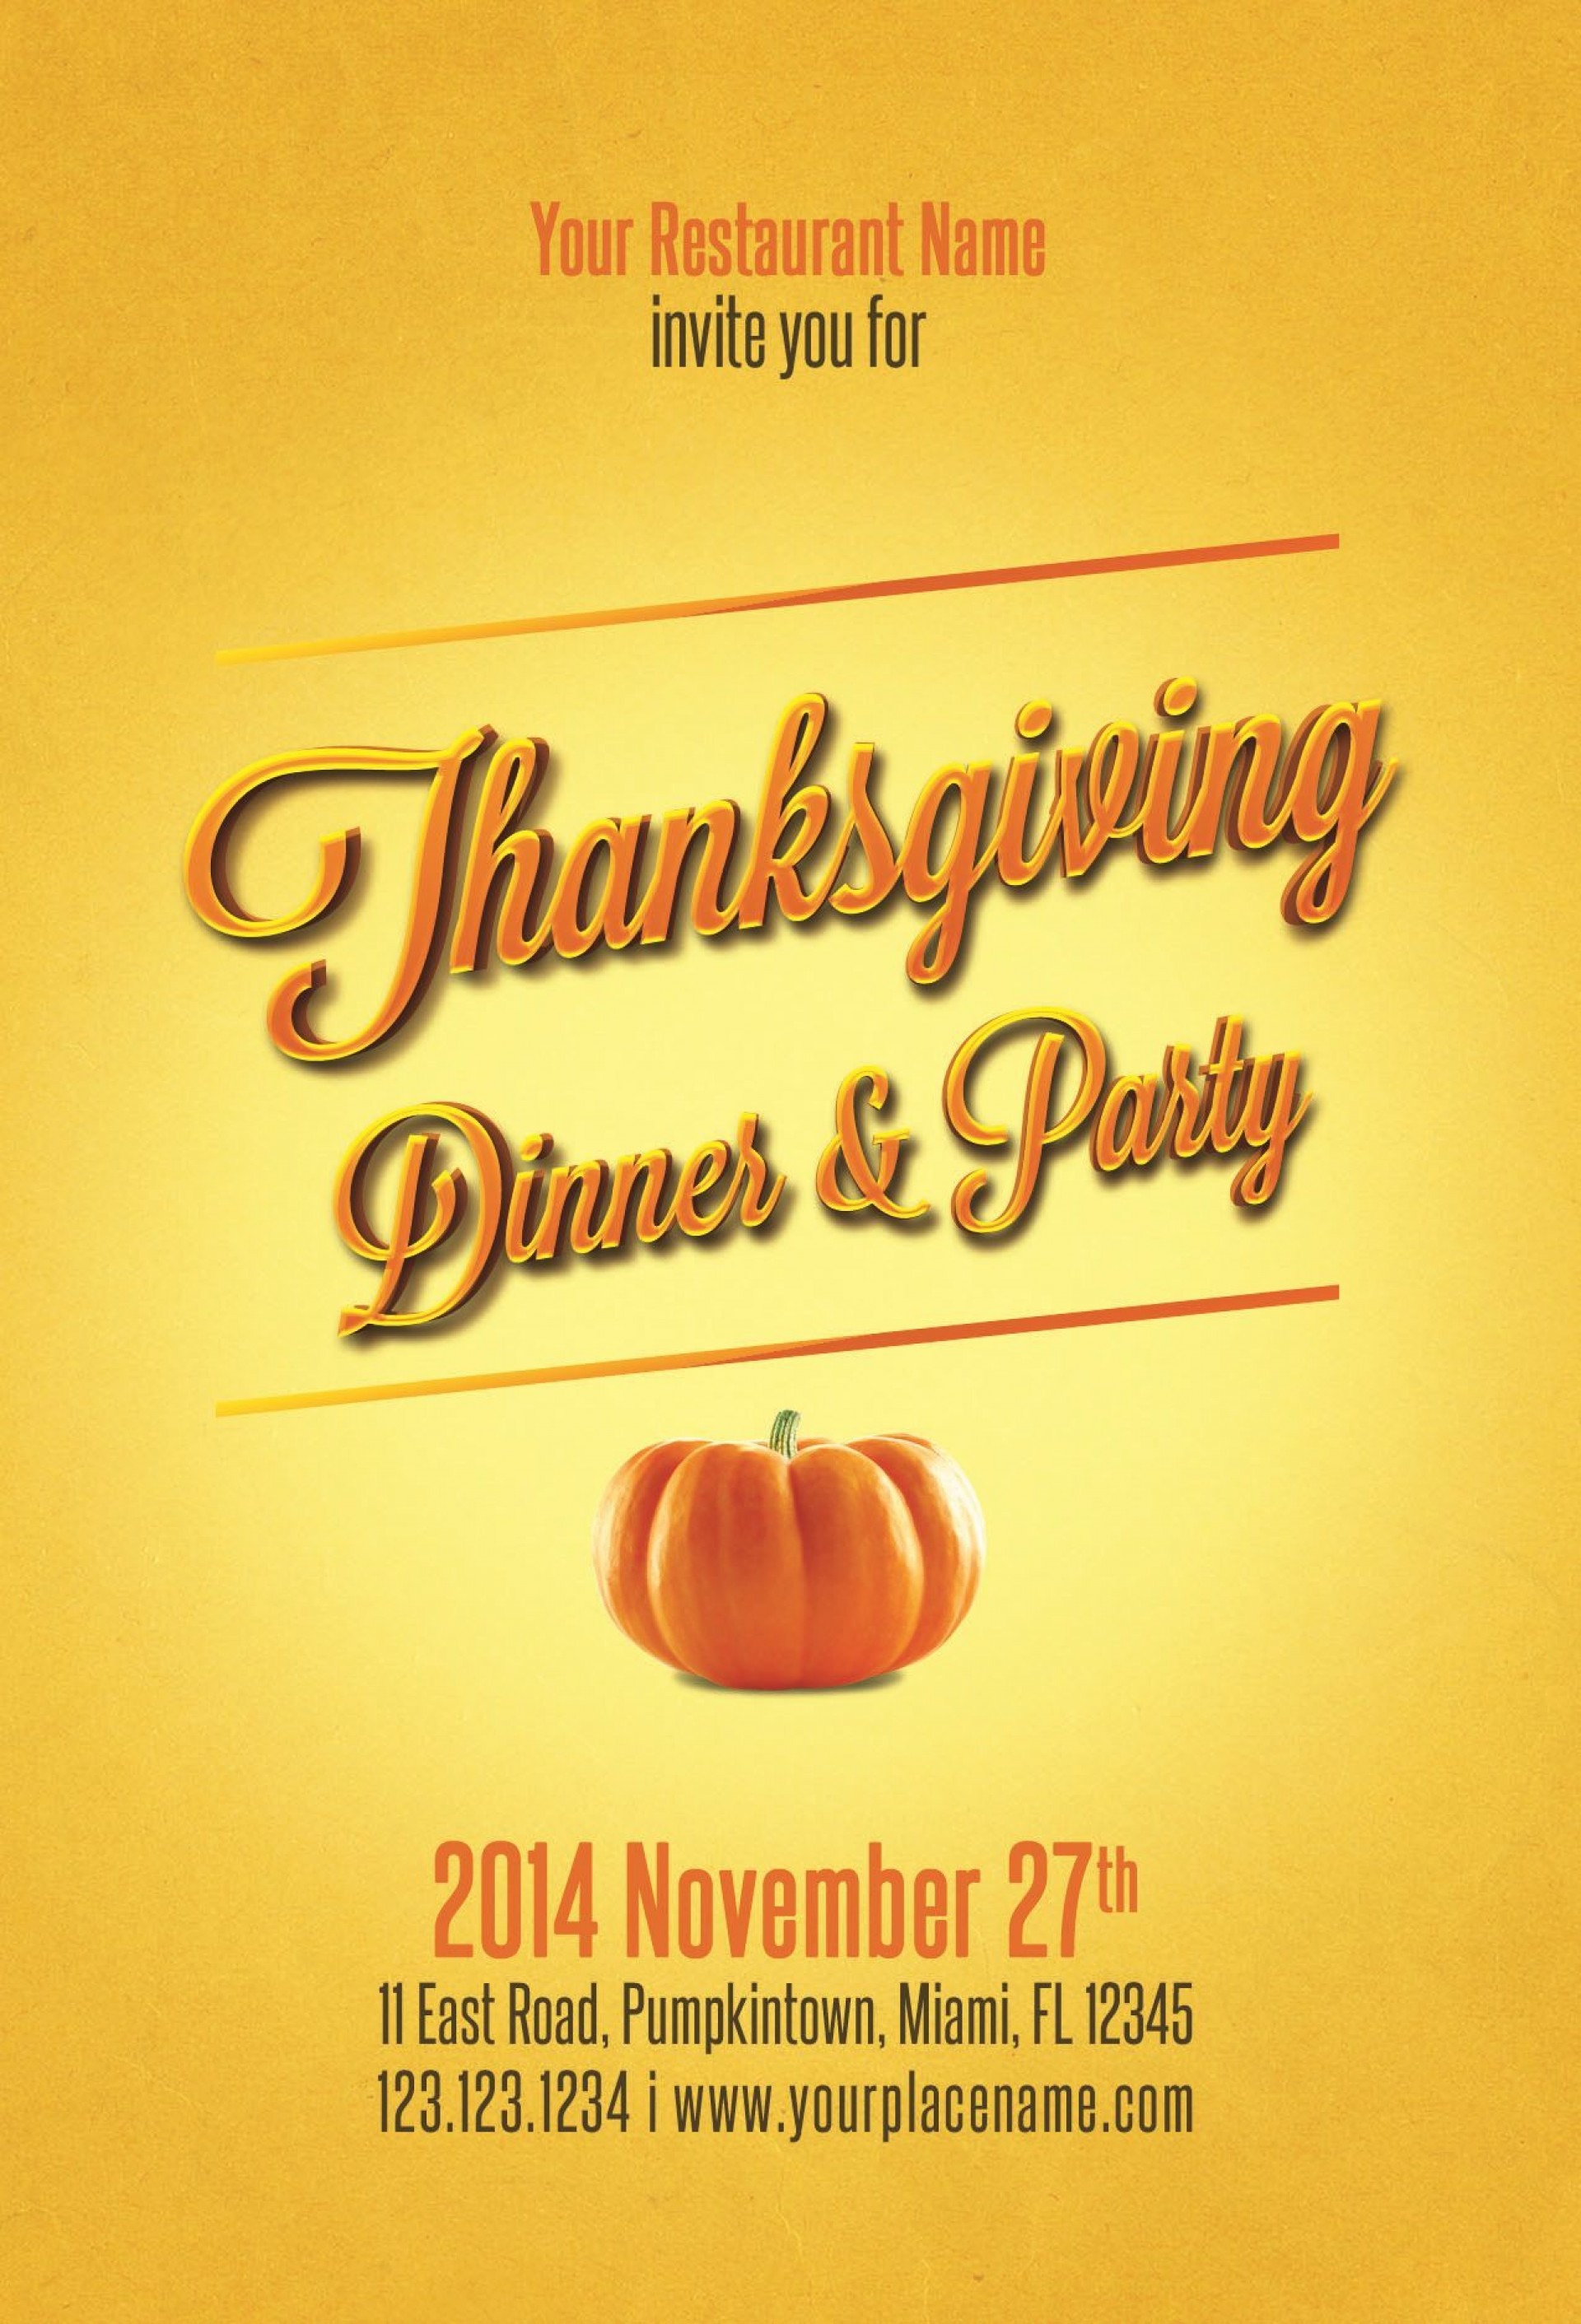 008 Remarkable Thanksgiving Flyer Template Free High Definition  Food Drive Party1920